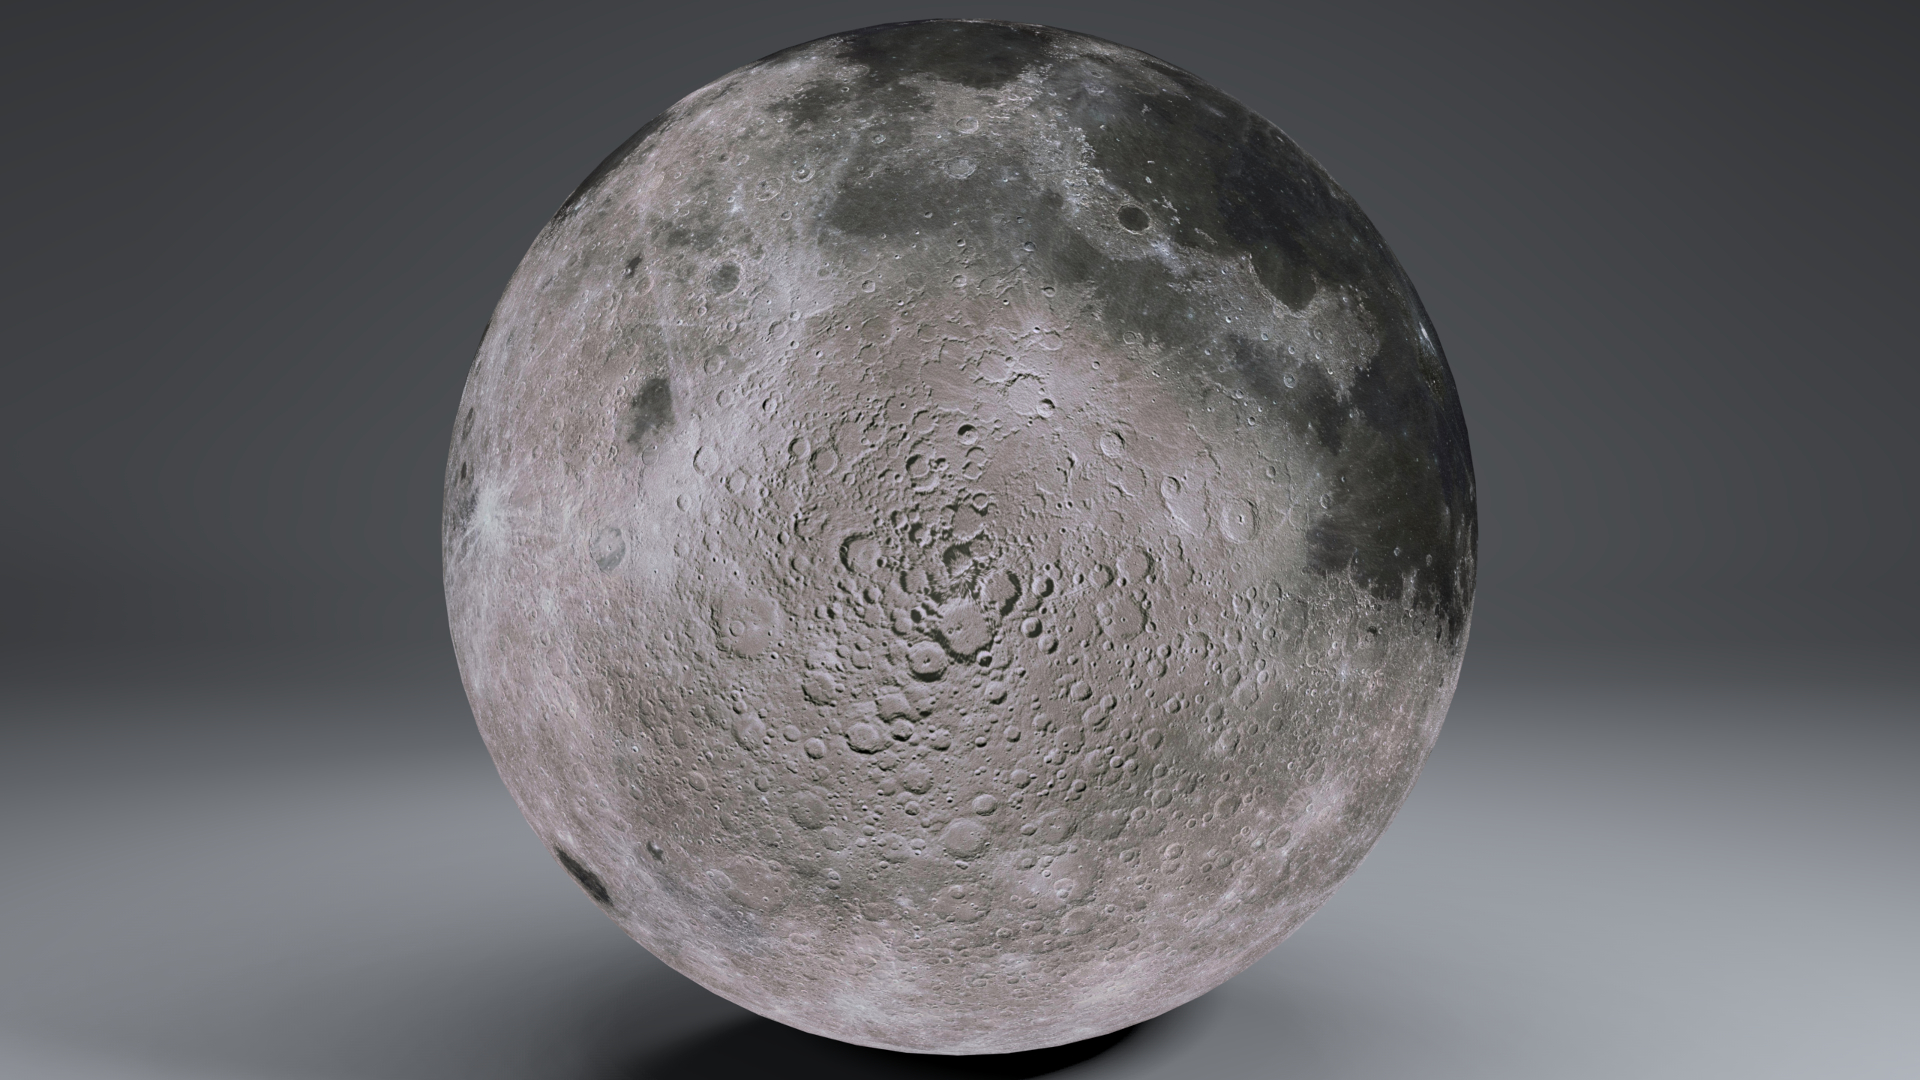 moonglobe 8k 3d model 3ds fbx blend dae obj 221872